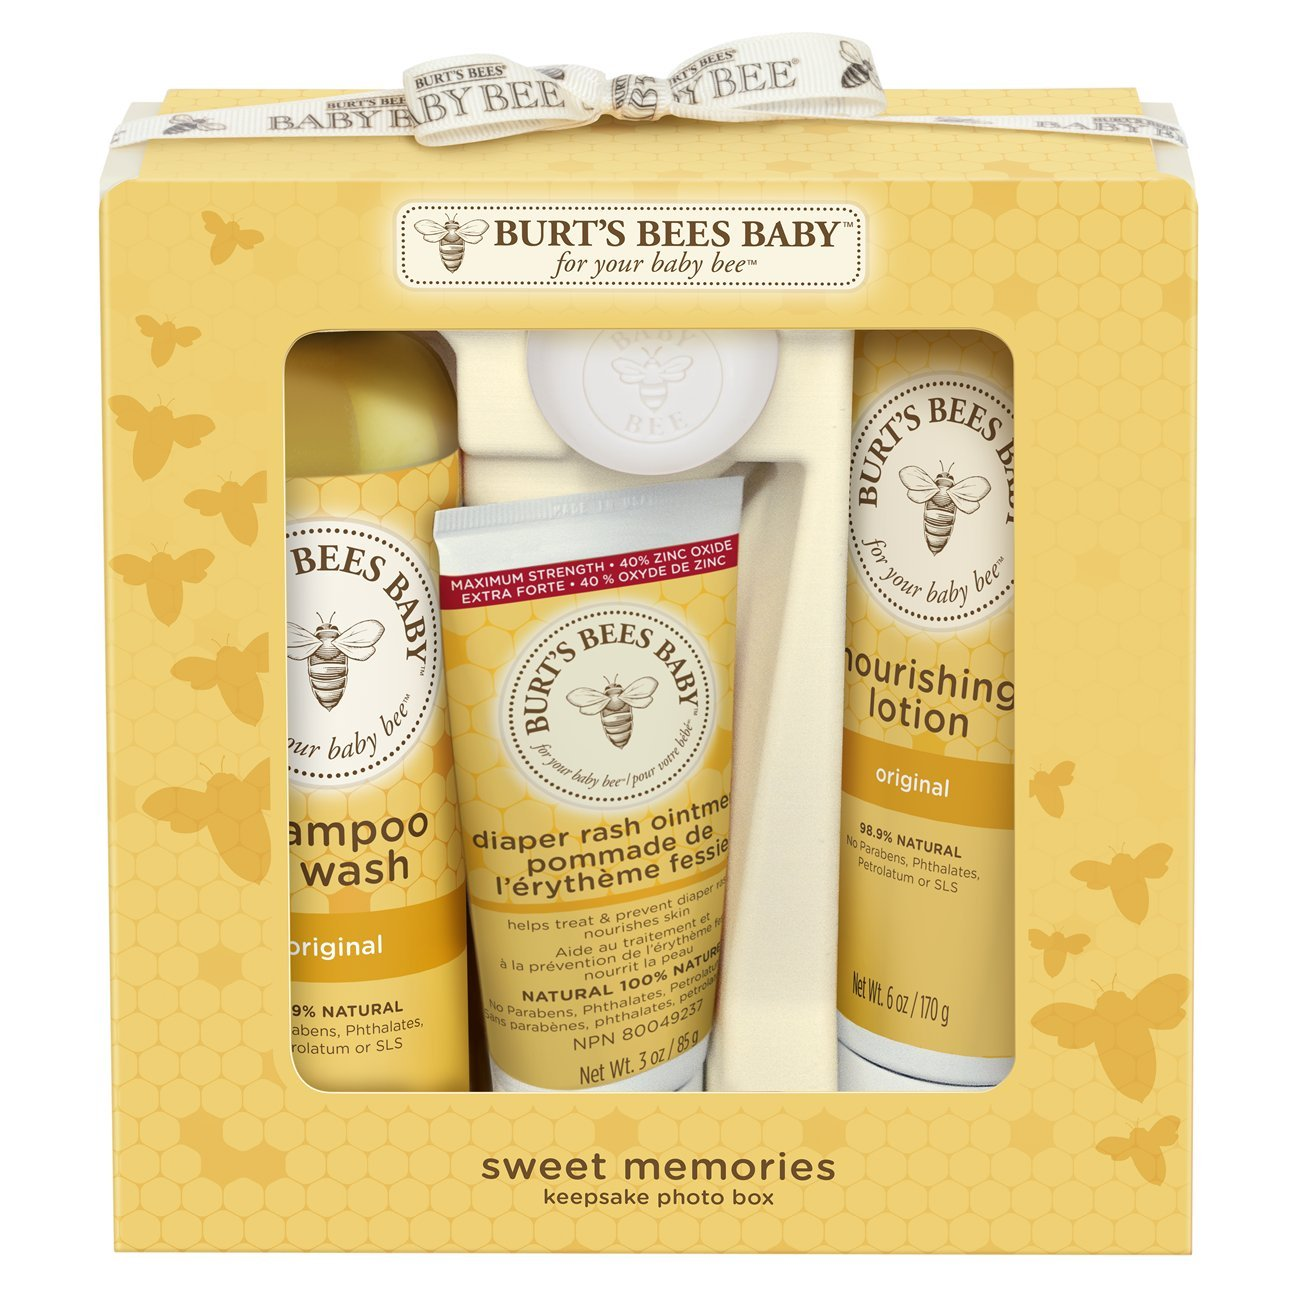 Burt's Bees Baby Sweet Memories Keepsake Photo Box Burt' s Bees Inc. 01768-20